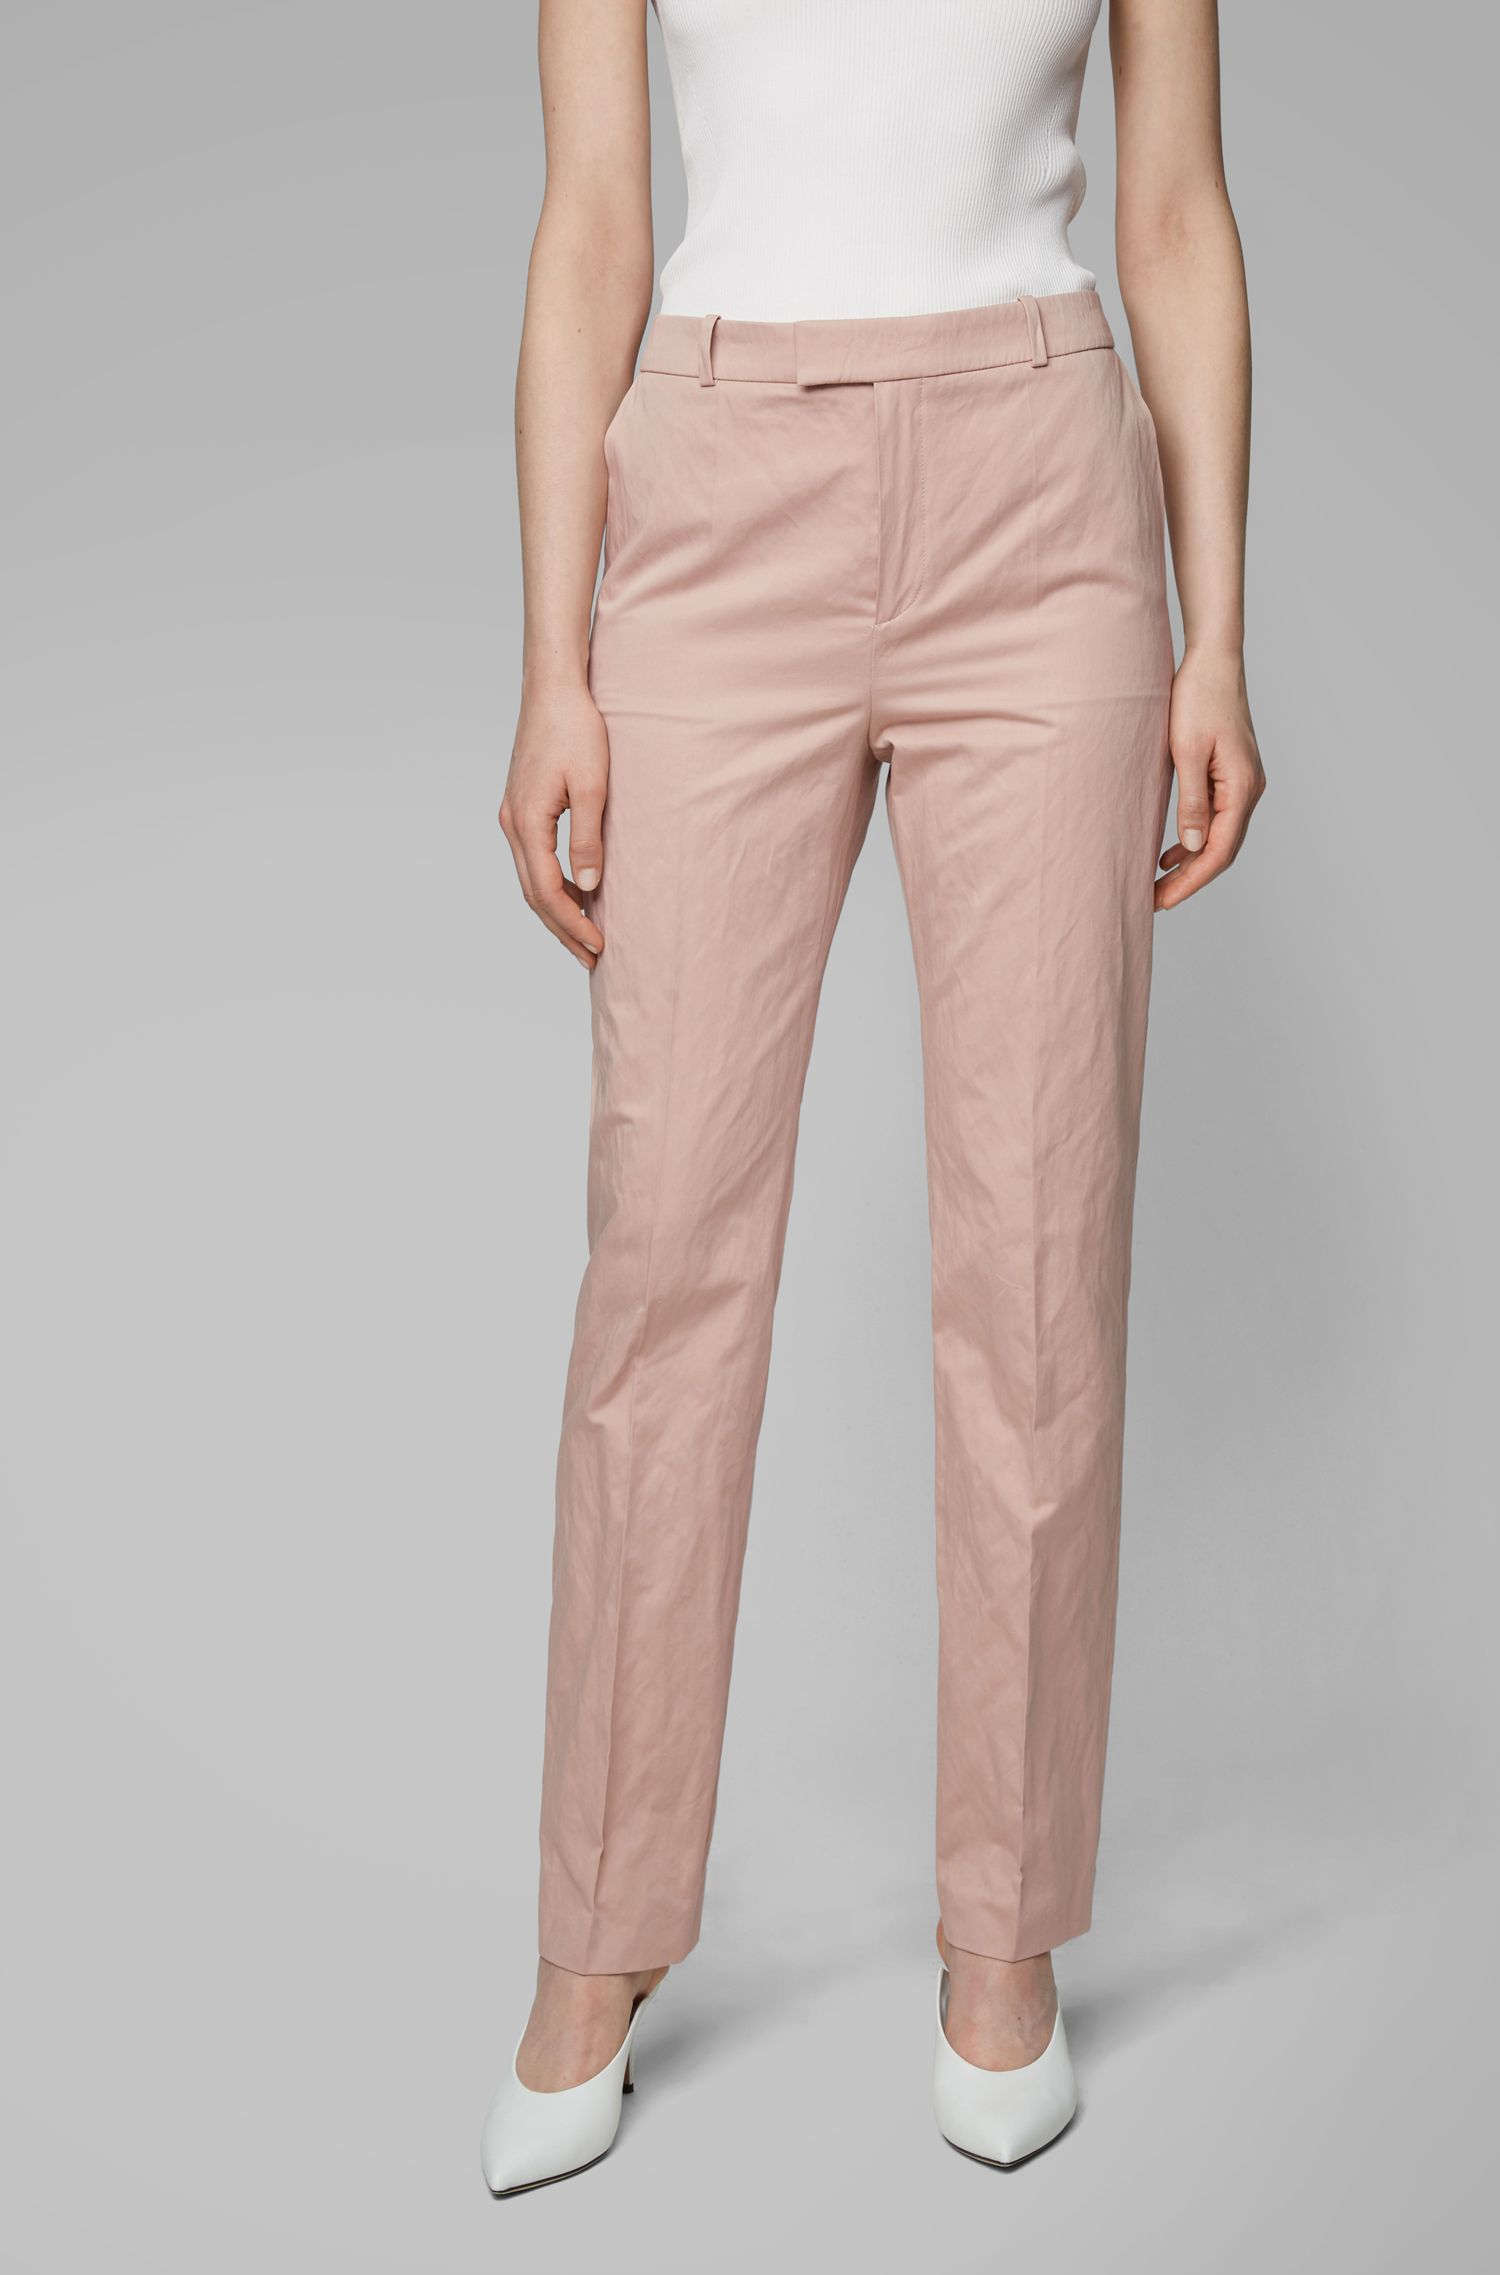 Pantalon Regular Fit en coton mélangé brillant, issu de la collection Fashion Show, Rose clair